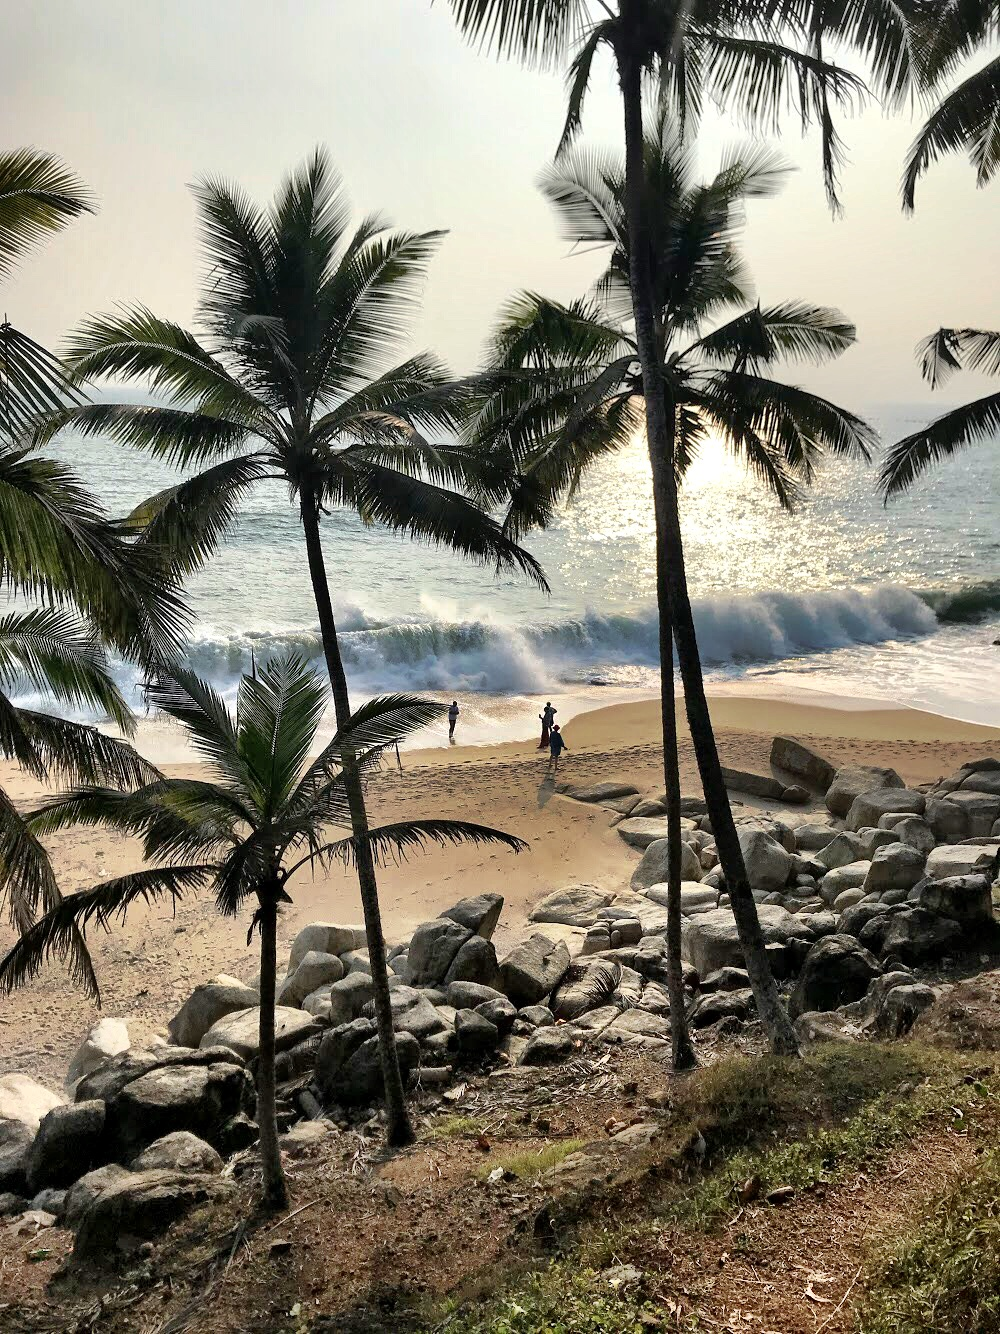 A stay in Kovalam isn't your typical Indian experience. As a beach town, it's much more laidback